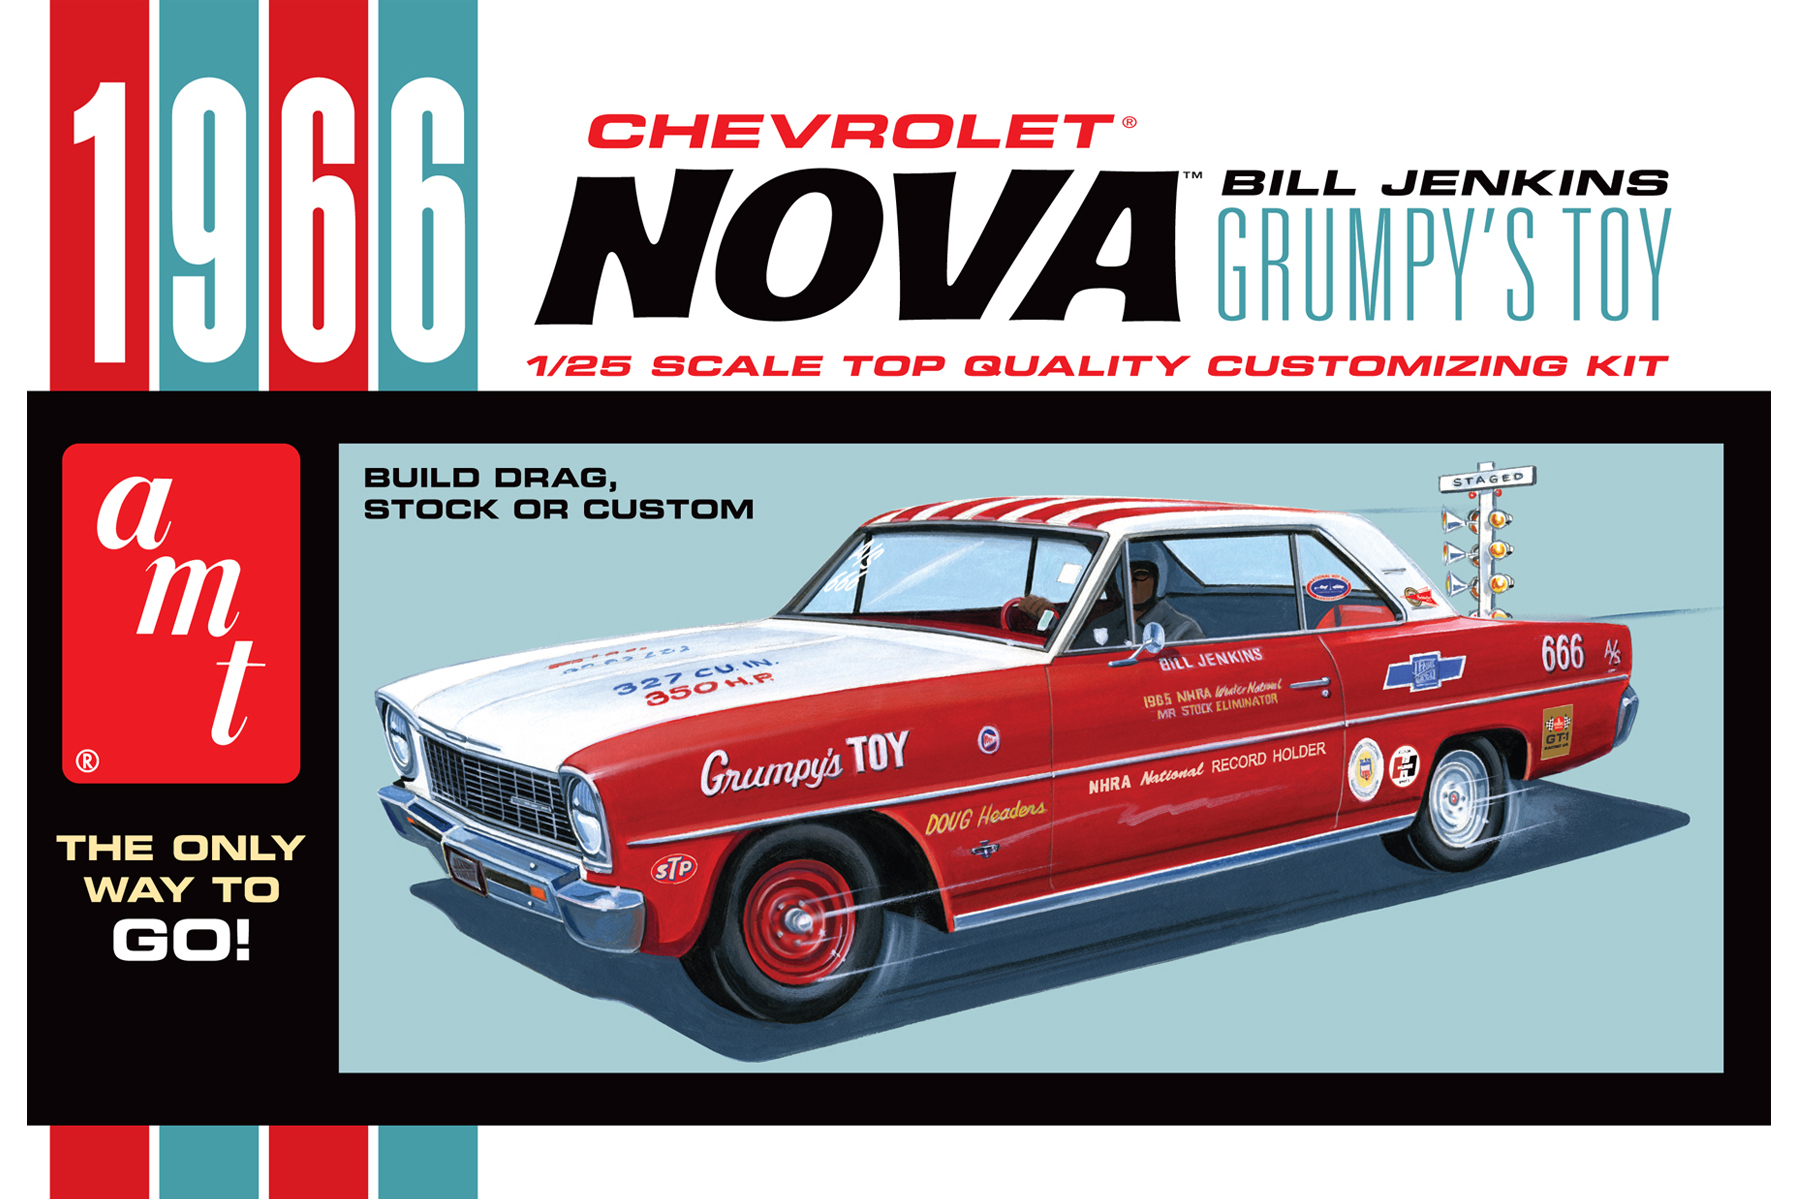 1966 Chevy Nova - Bill Jenkins (772)